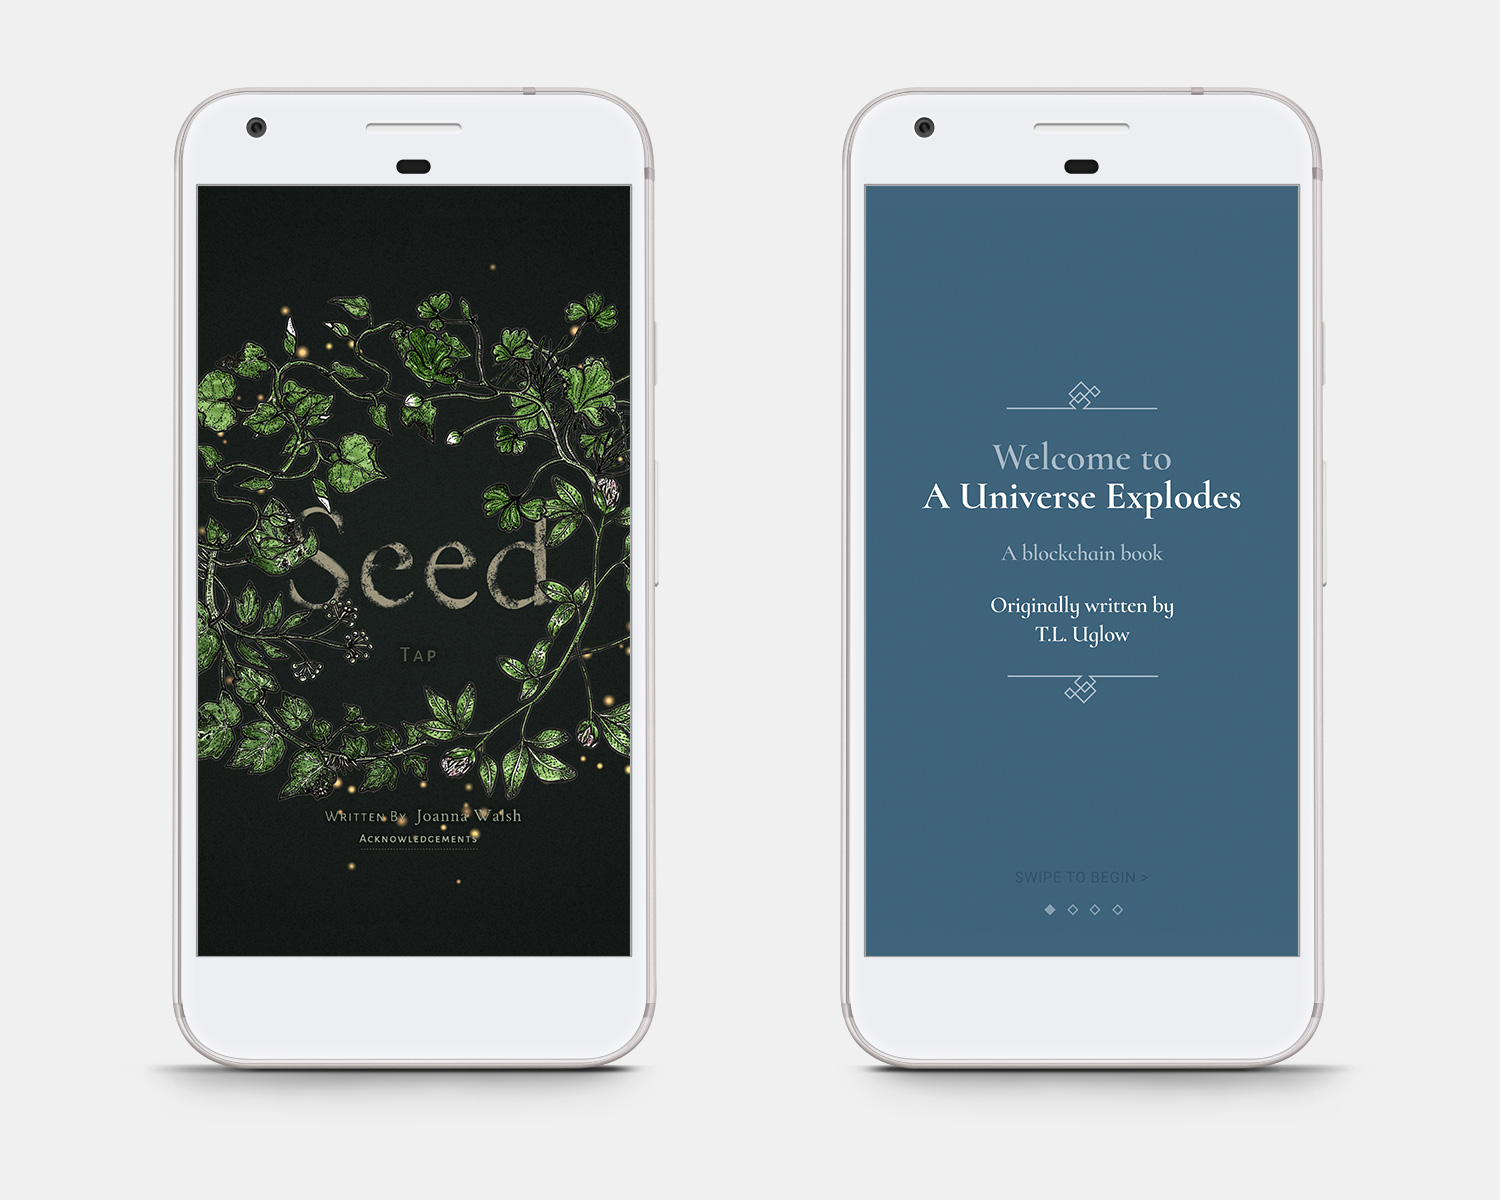 seed-aue-book-covers-in-phone-screens.jpg